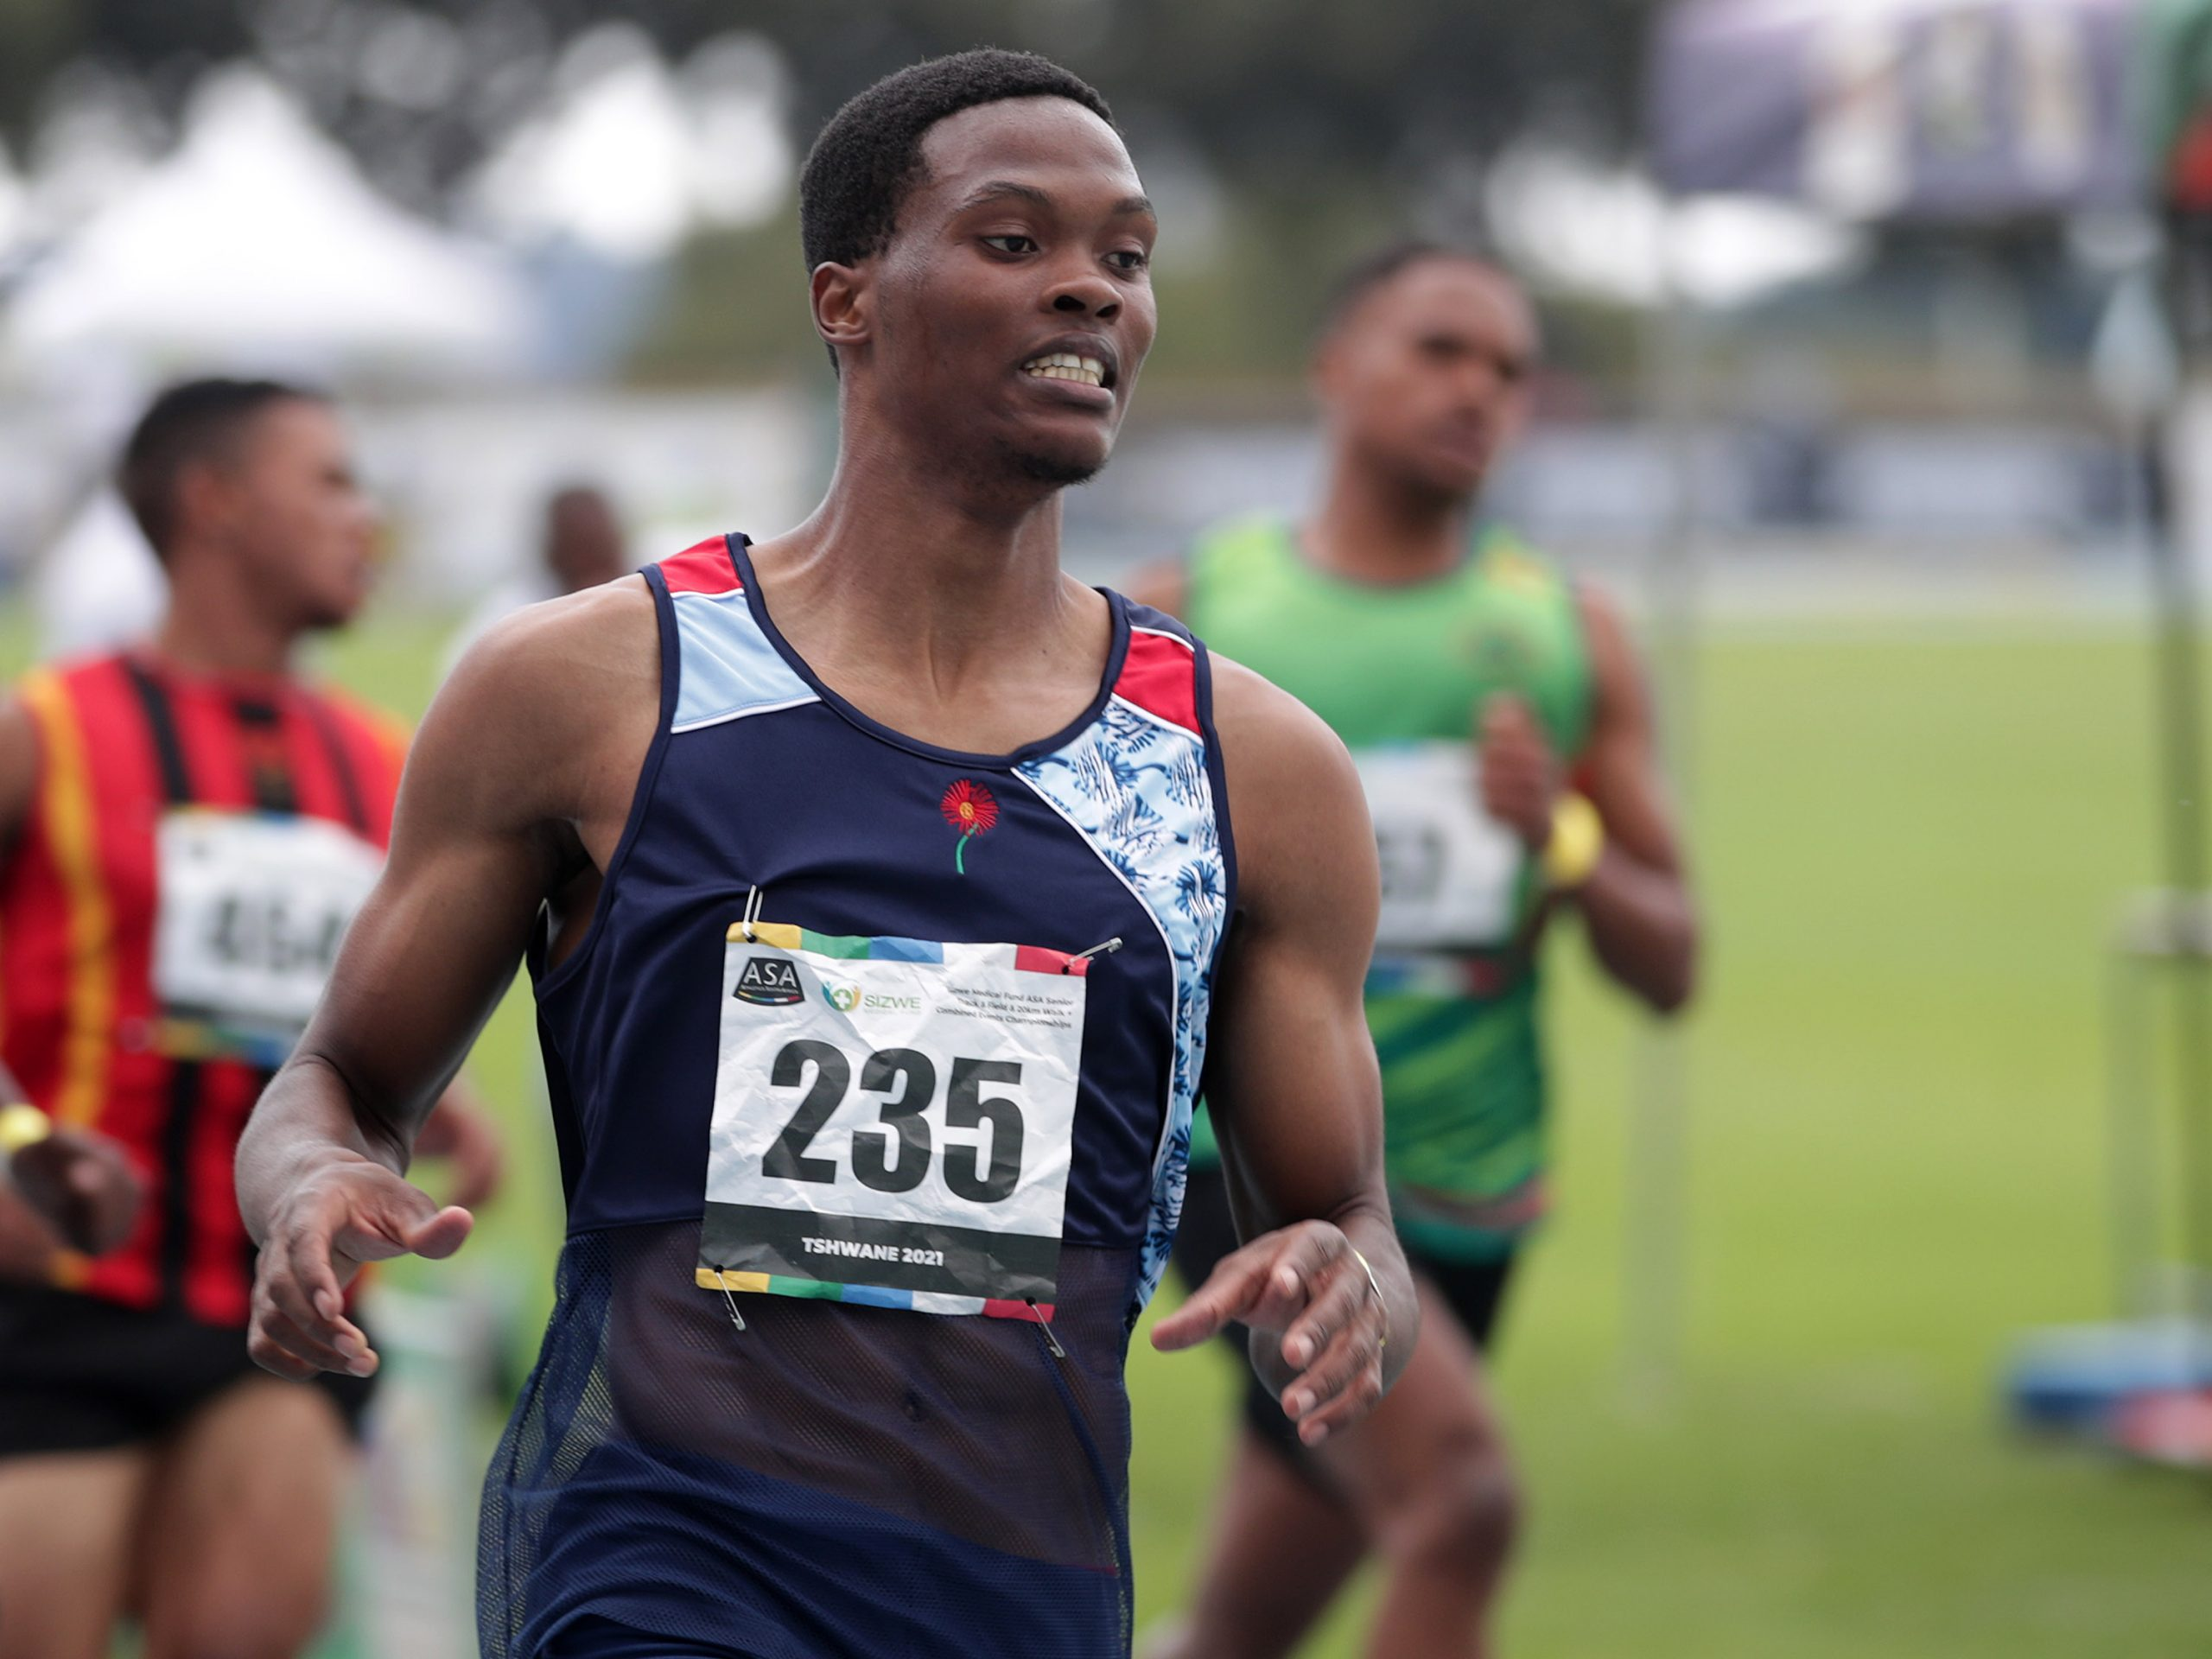 'Gifted' Leotlela joins the sub-10 second 100m club